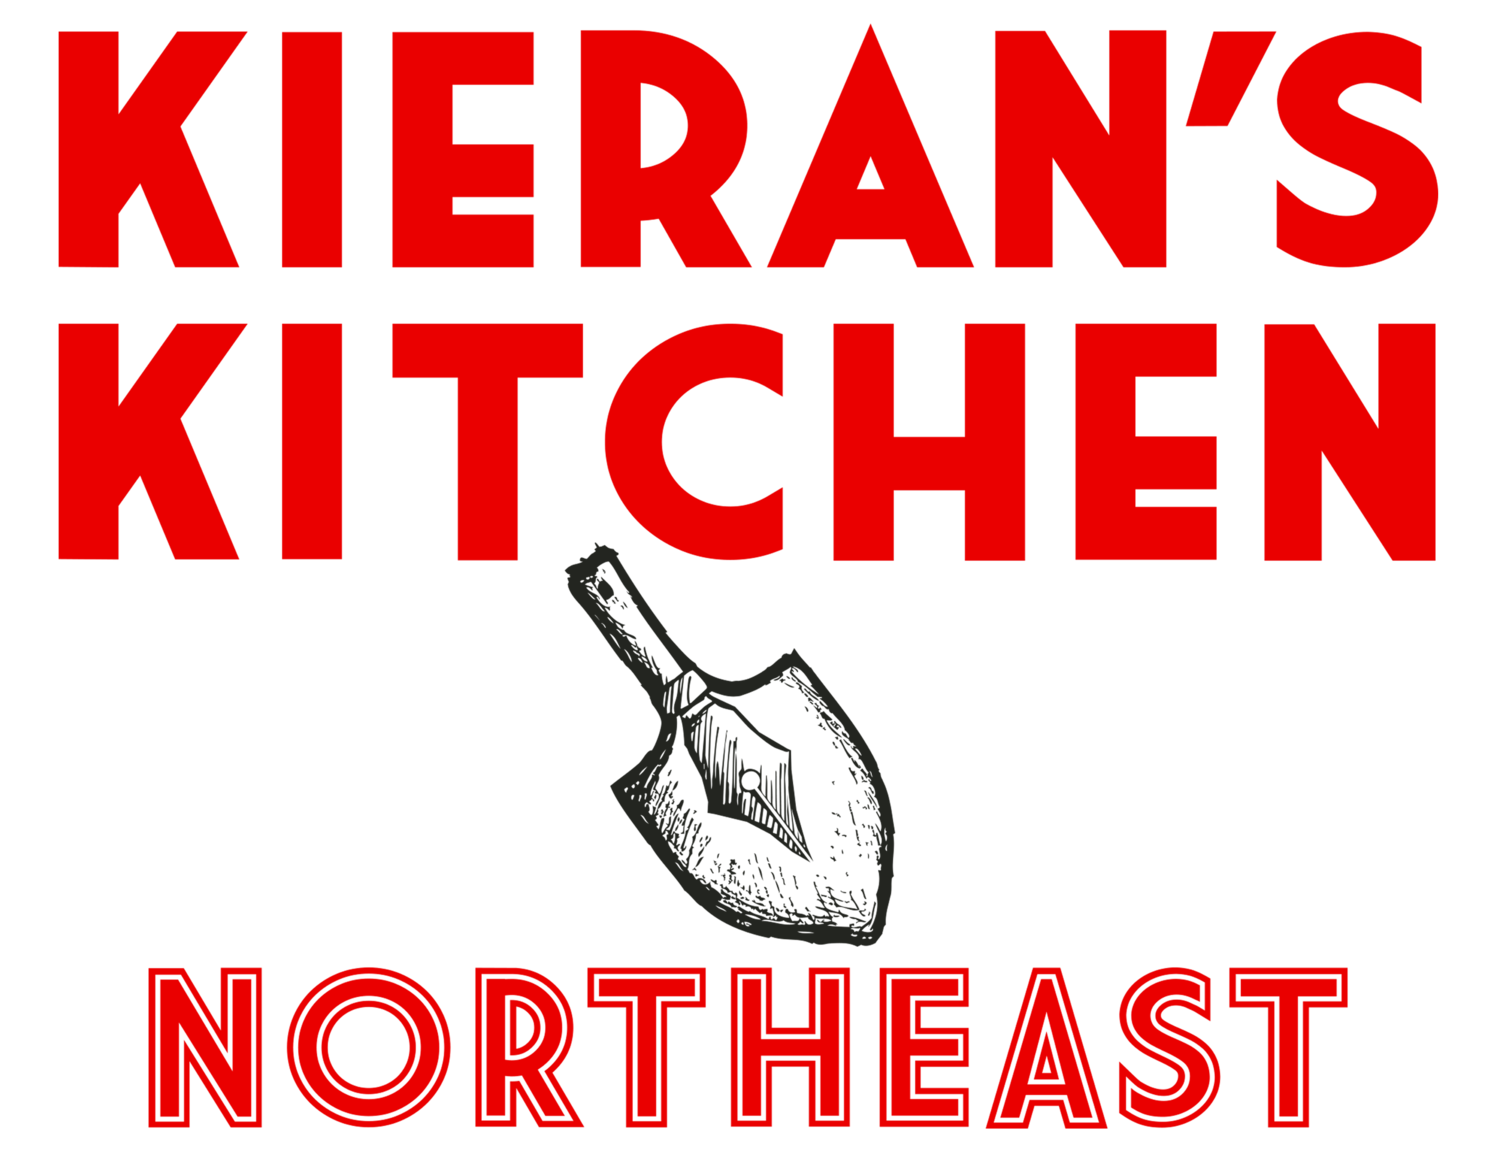 Kieran's Kitchen Northeast